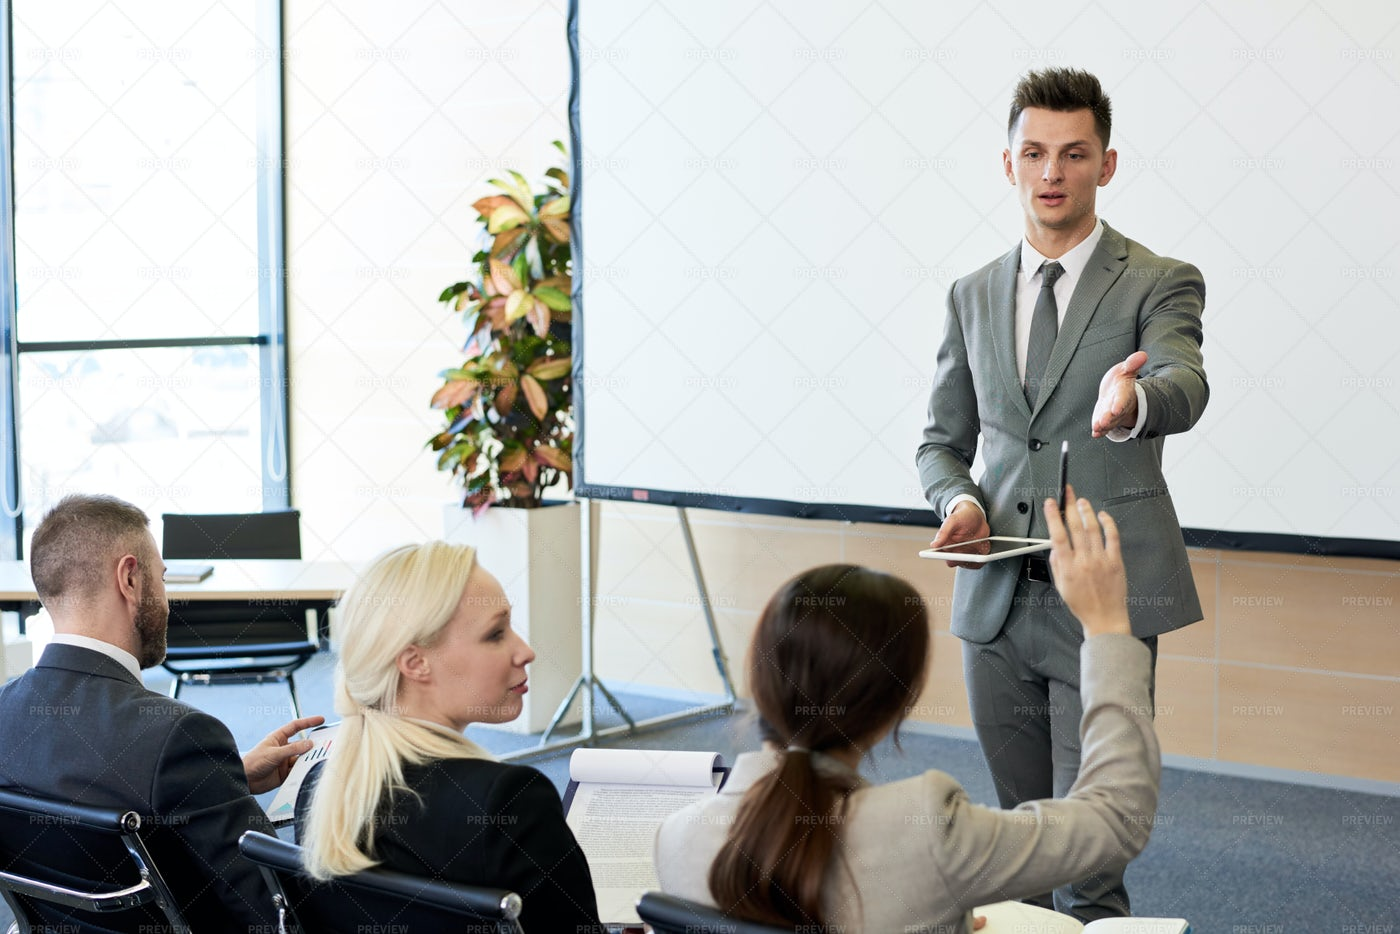 Business Coach In Seminar: Stock Photos